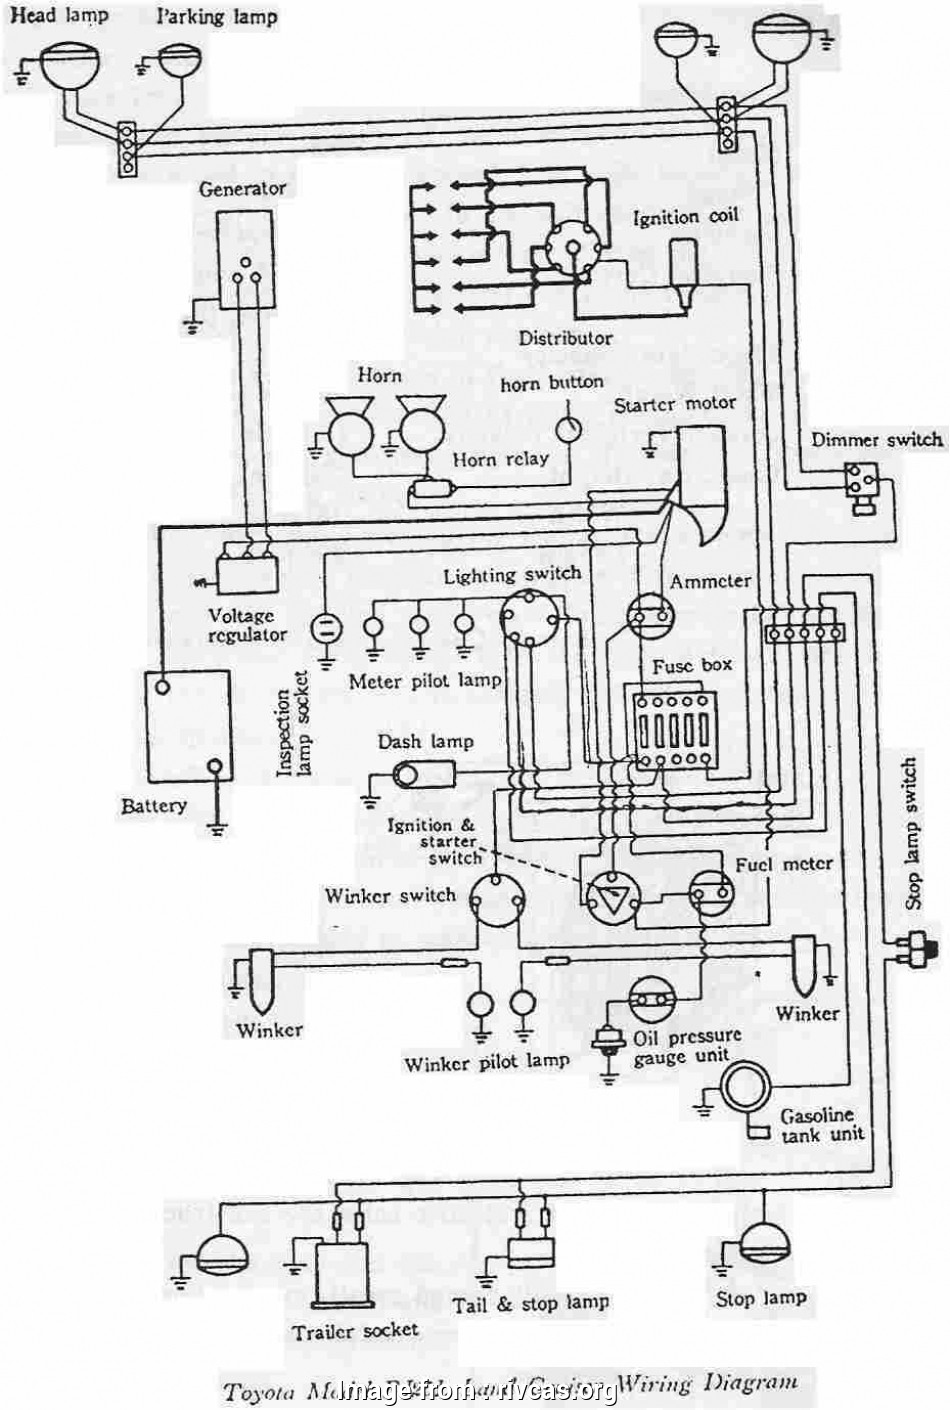 Electrical Wiring Diagram Of Automotive Popular     Electrical Wiring Diagram Toyota Yaris In